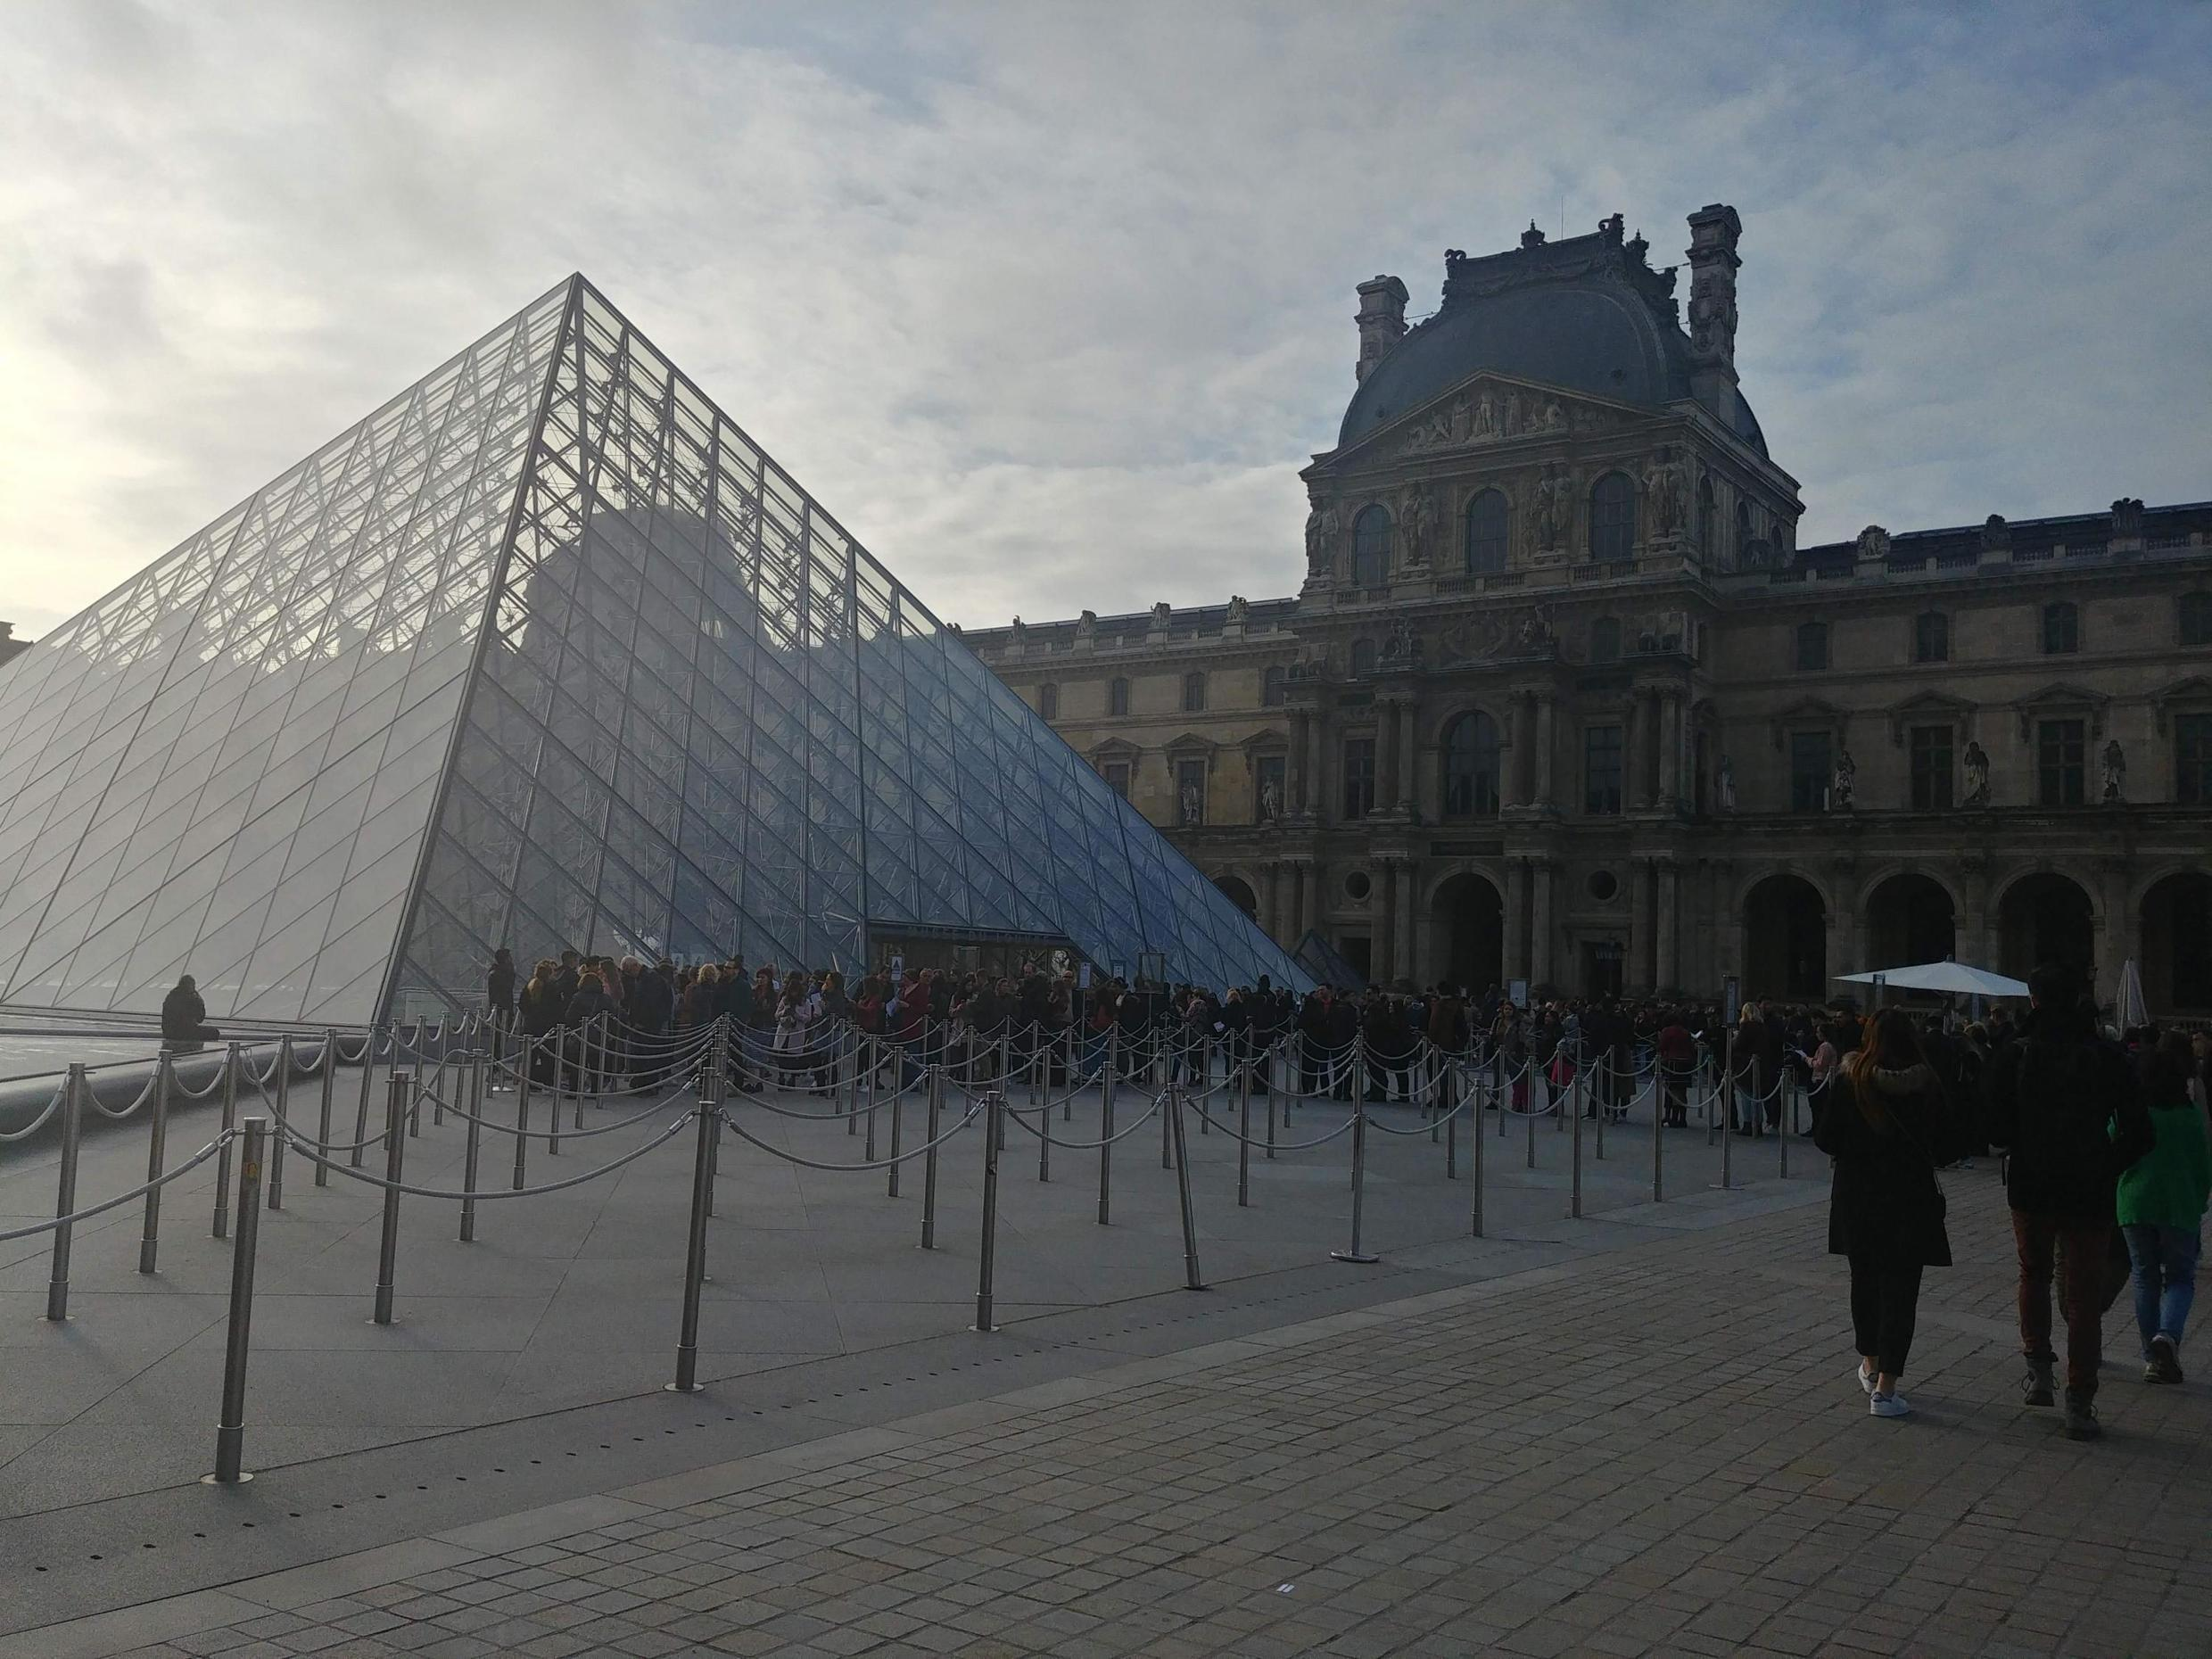 The International Heritage Fair was held at the Louvre.